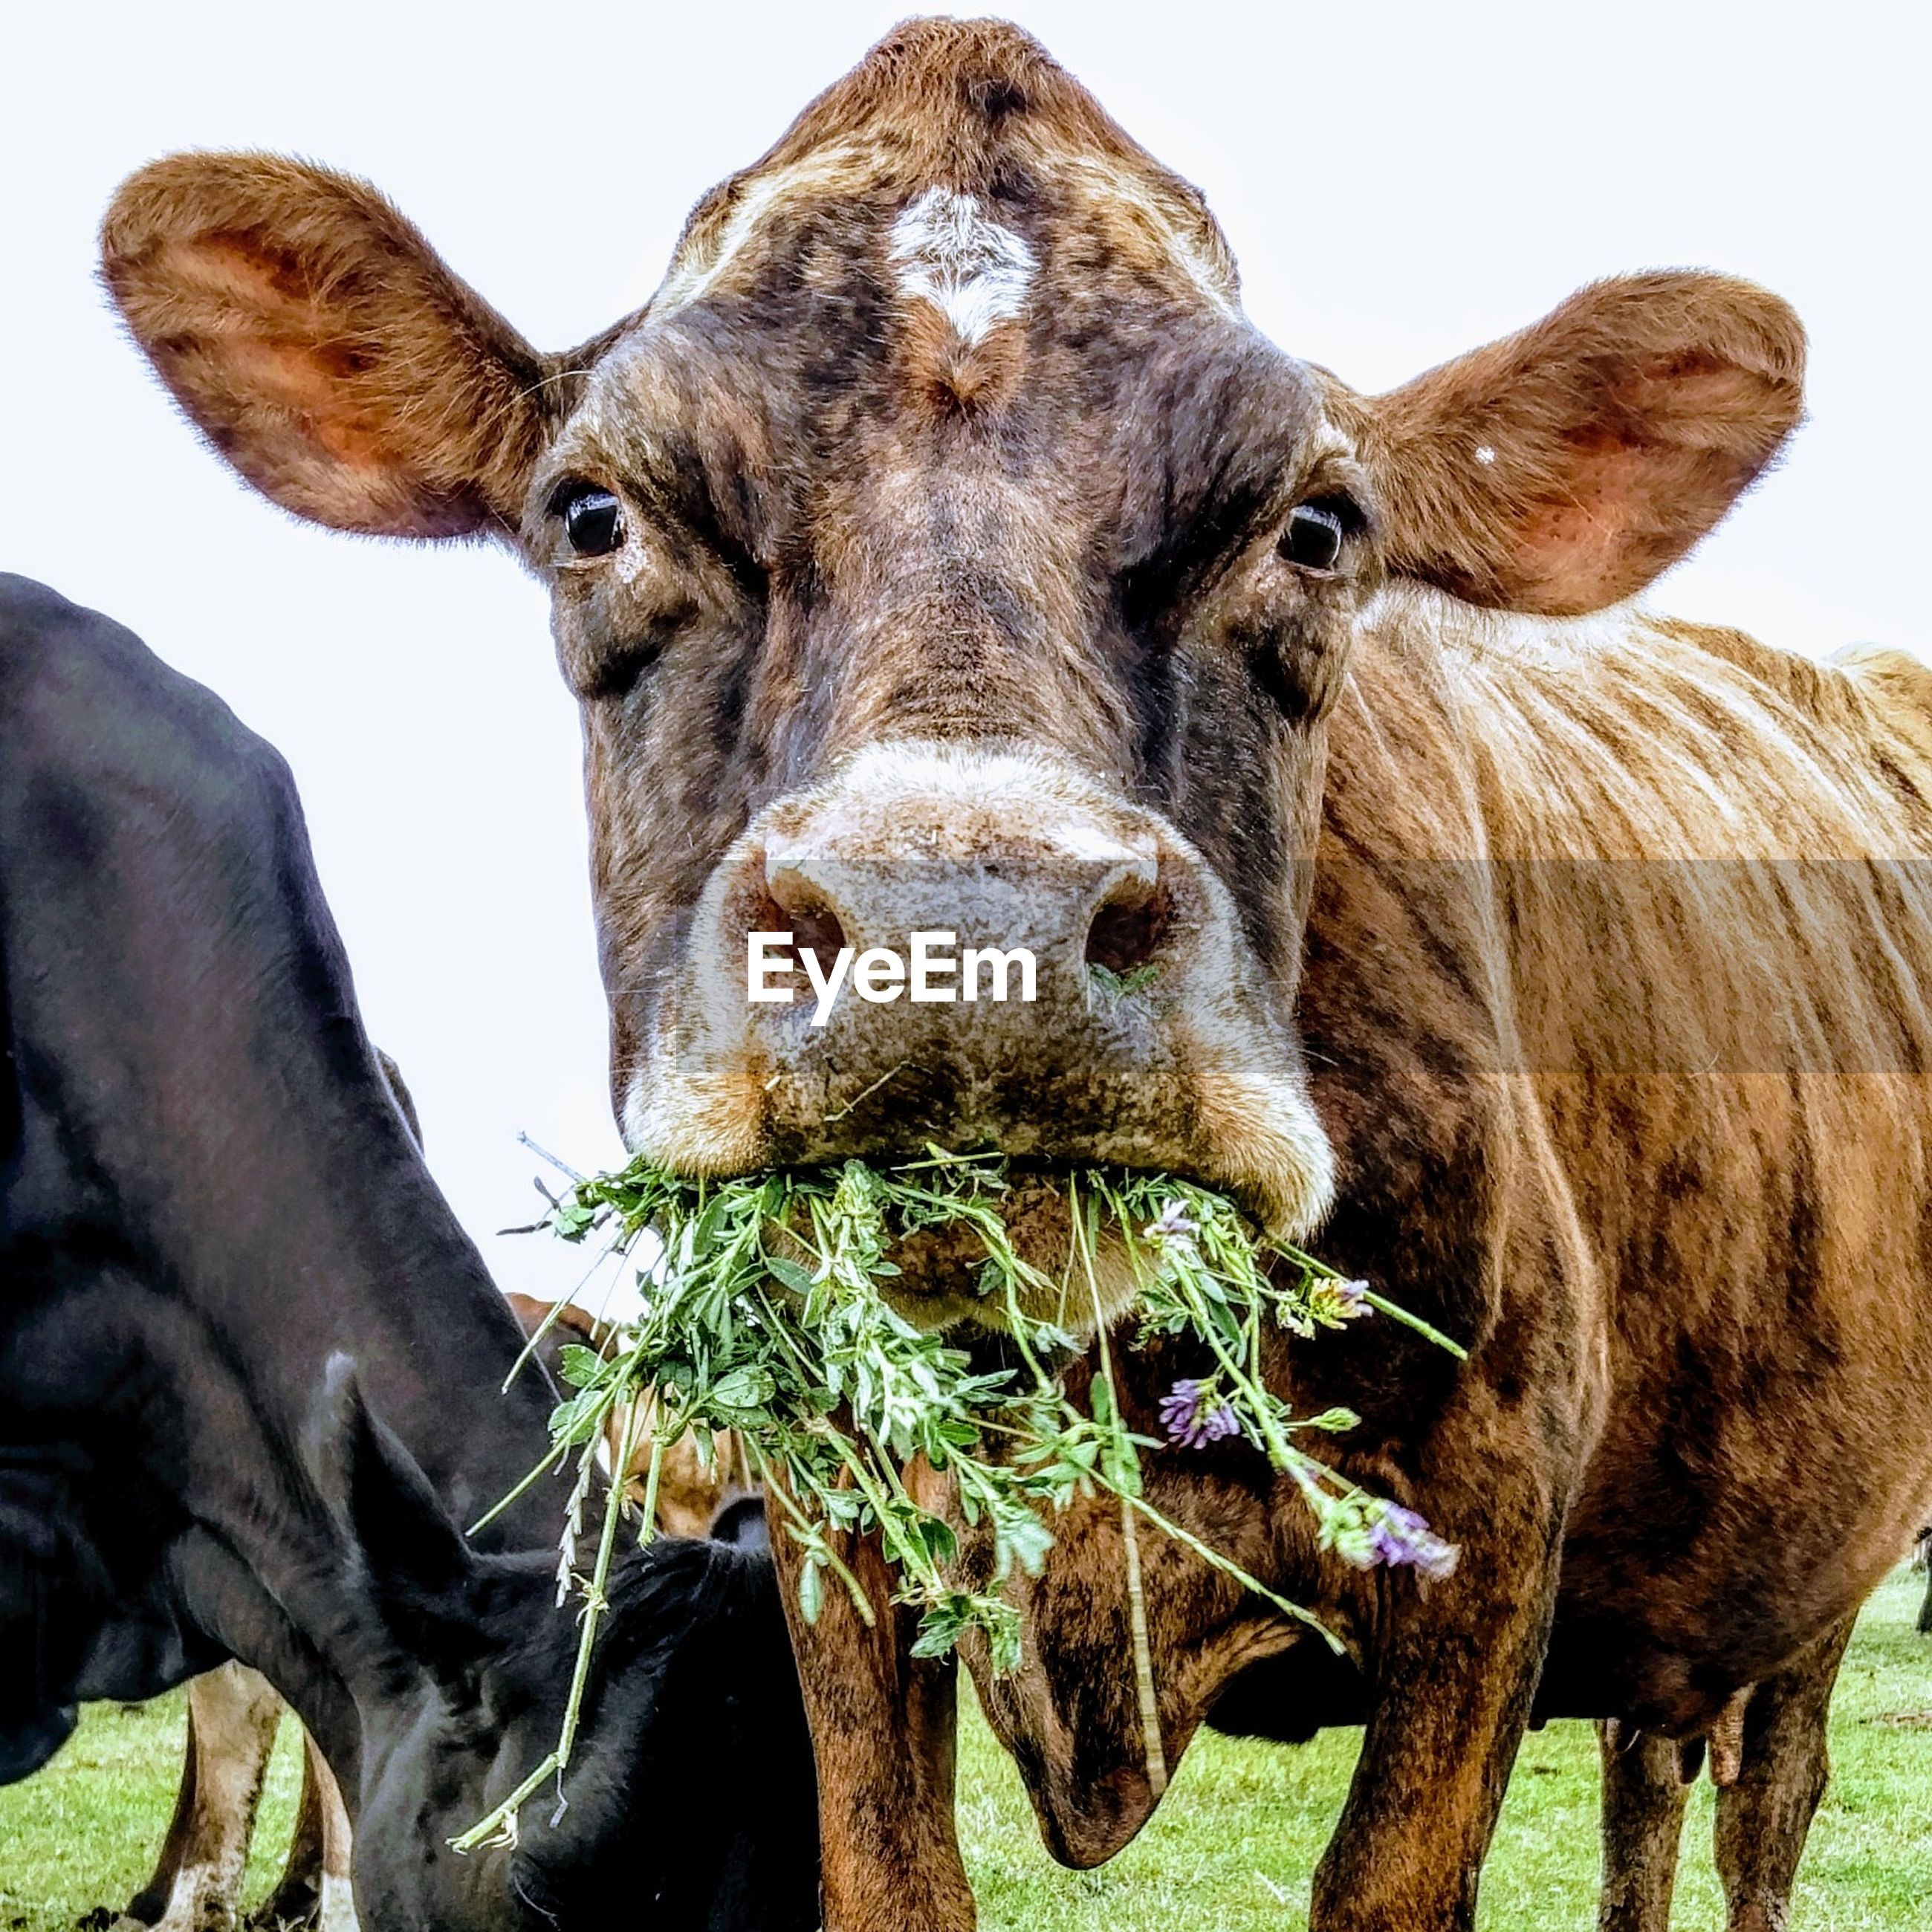 Reba the red cow eating lucerne